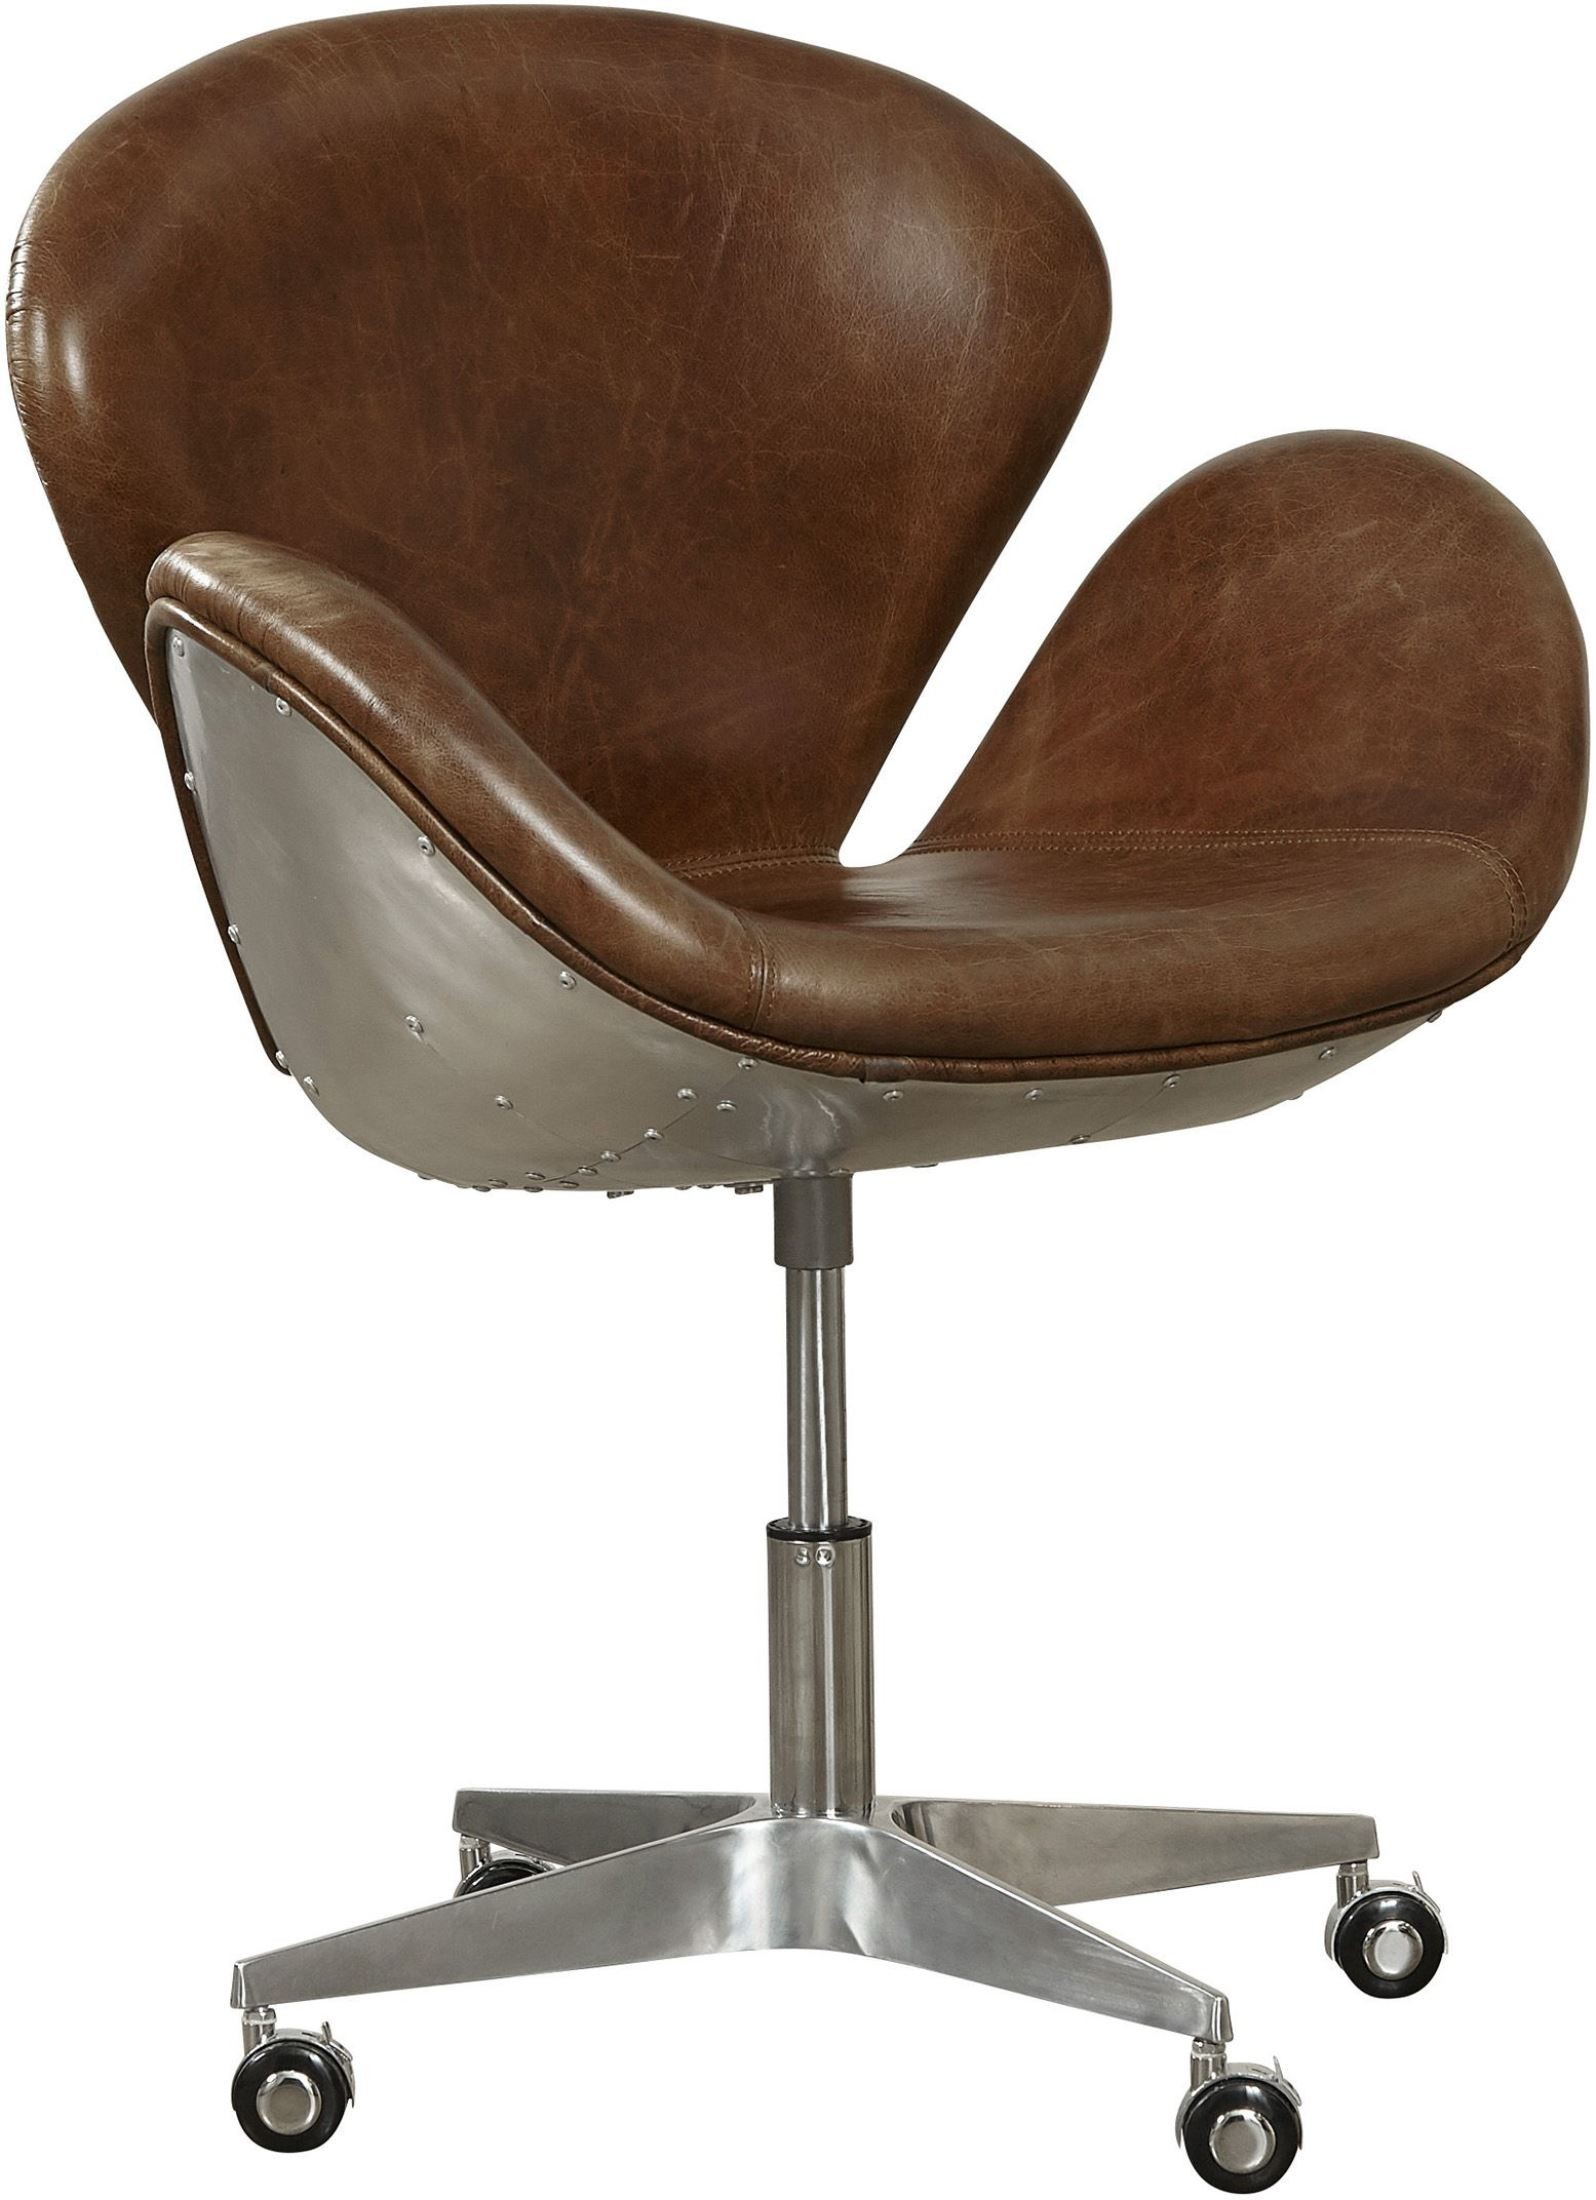 Cranwell cocoa brompton bomber office chair